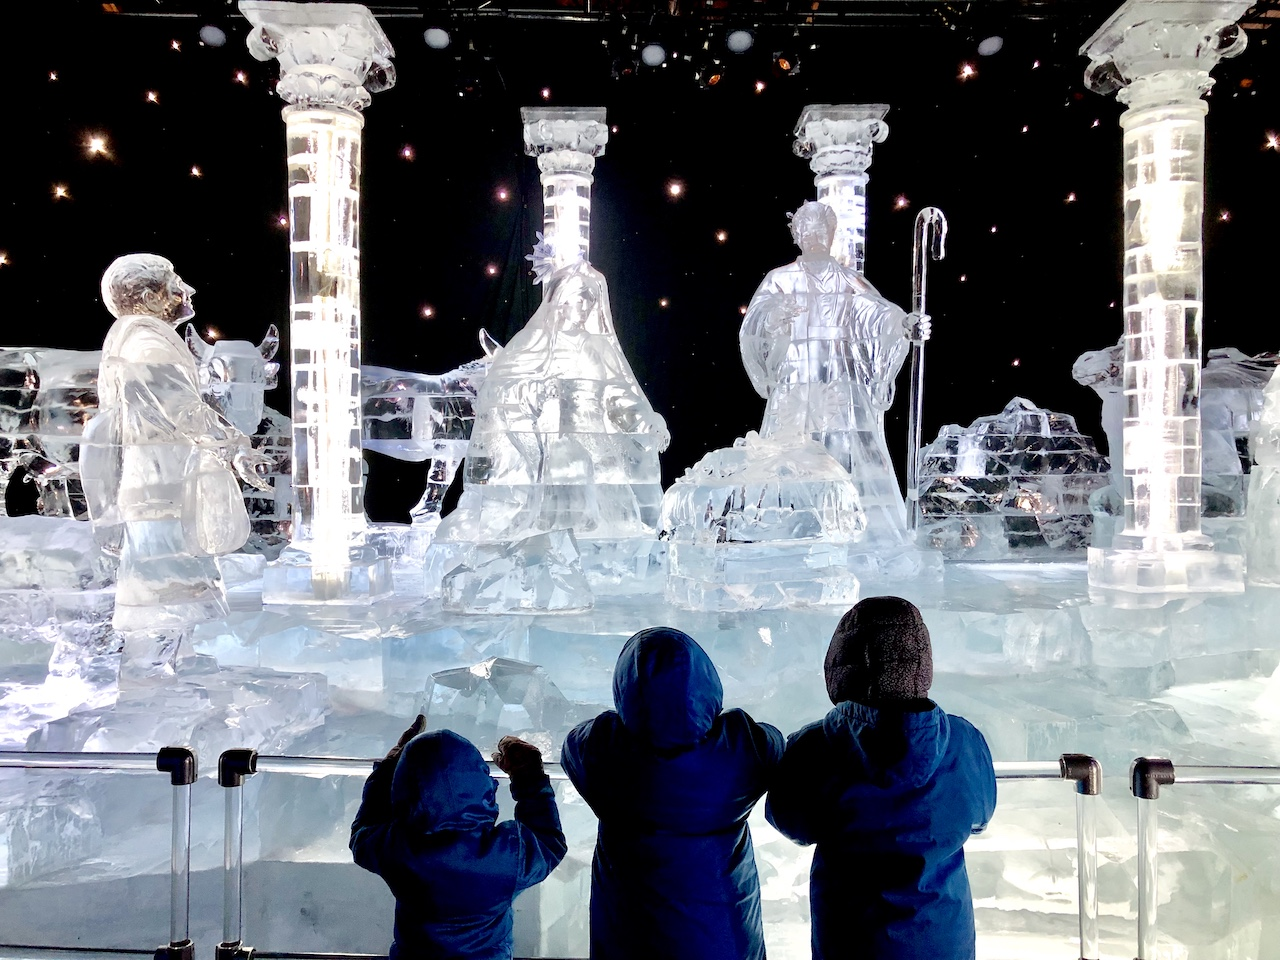 ICE! at Gaylord Palms - Experience True Cold in Orlando, FL | Snow and Ice in Orlando | Gaylord Palms Resort and Convention Center | Marriott Timeshare | #ICE #ICEatGaylordPalms #familytravel #travelwithkids #orlando #orlandoFL #VisitOrlando #orlandohotels #familyfriendlyhotel #hotelinOrlando #hotelnearDisneyWorld #icetubingOrlando